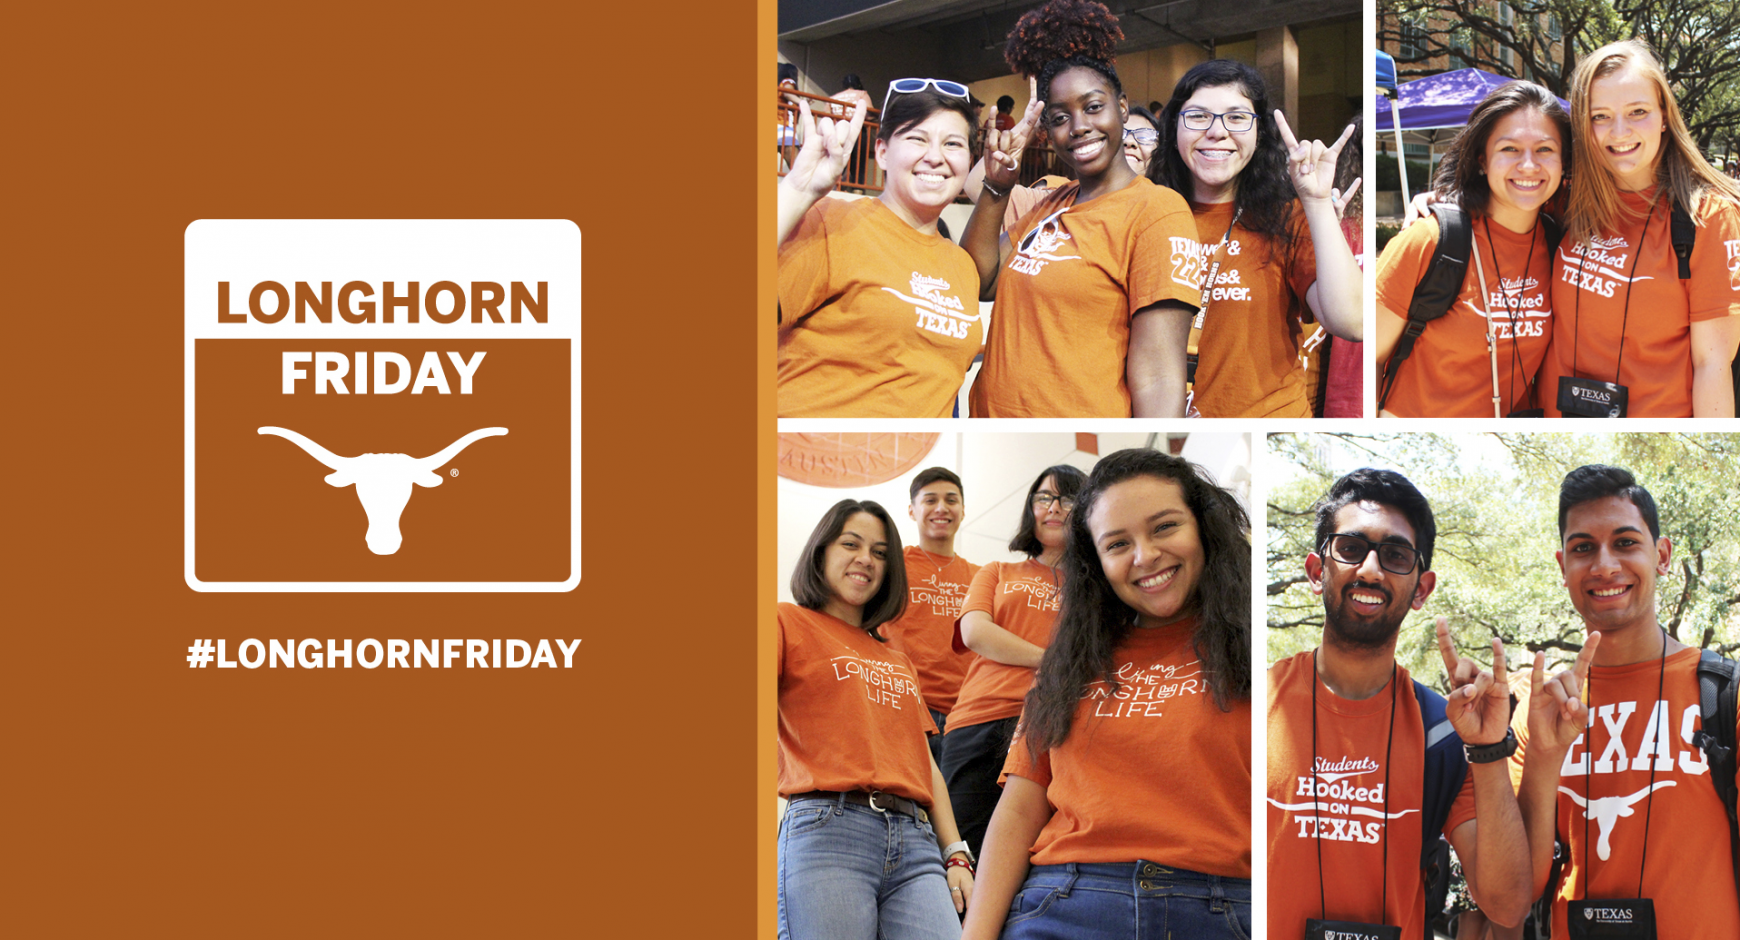 Longhorn Friday Promotional Image